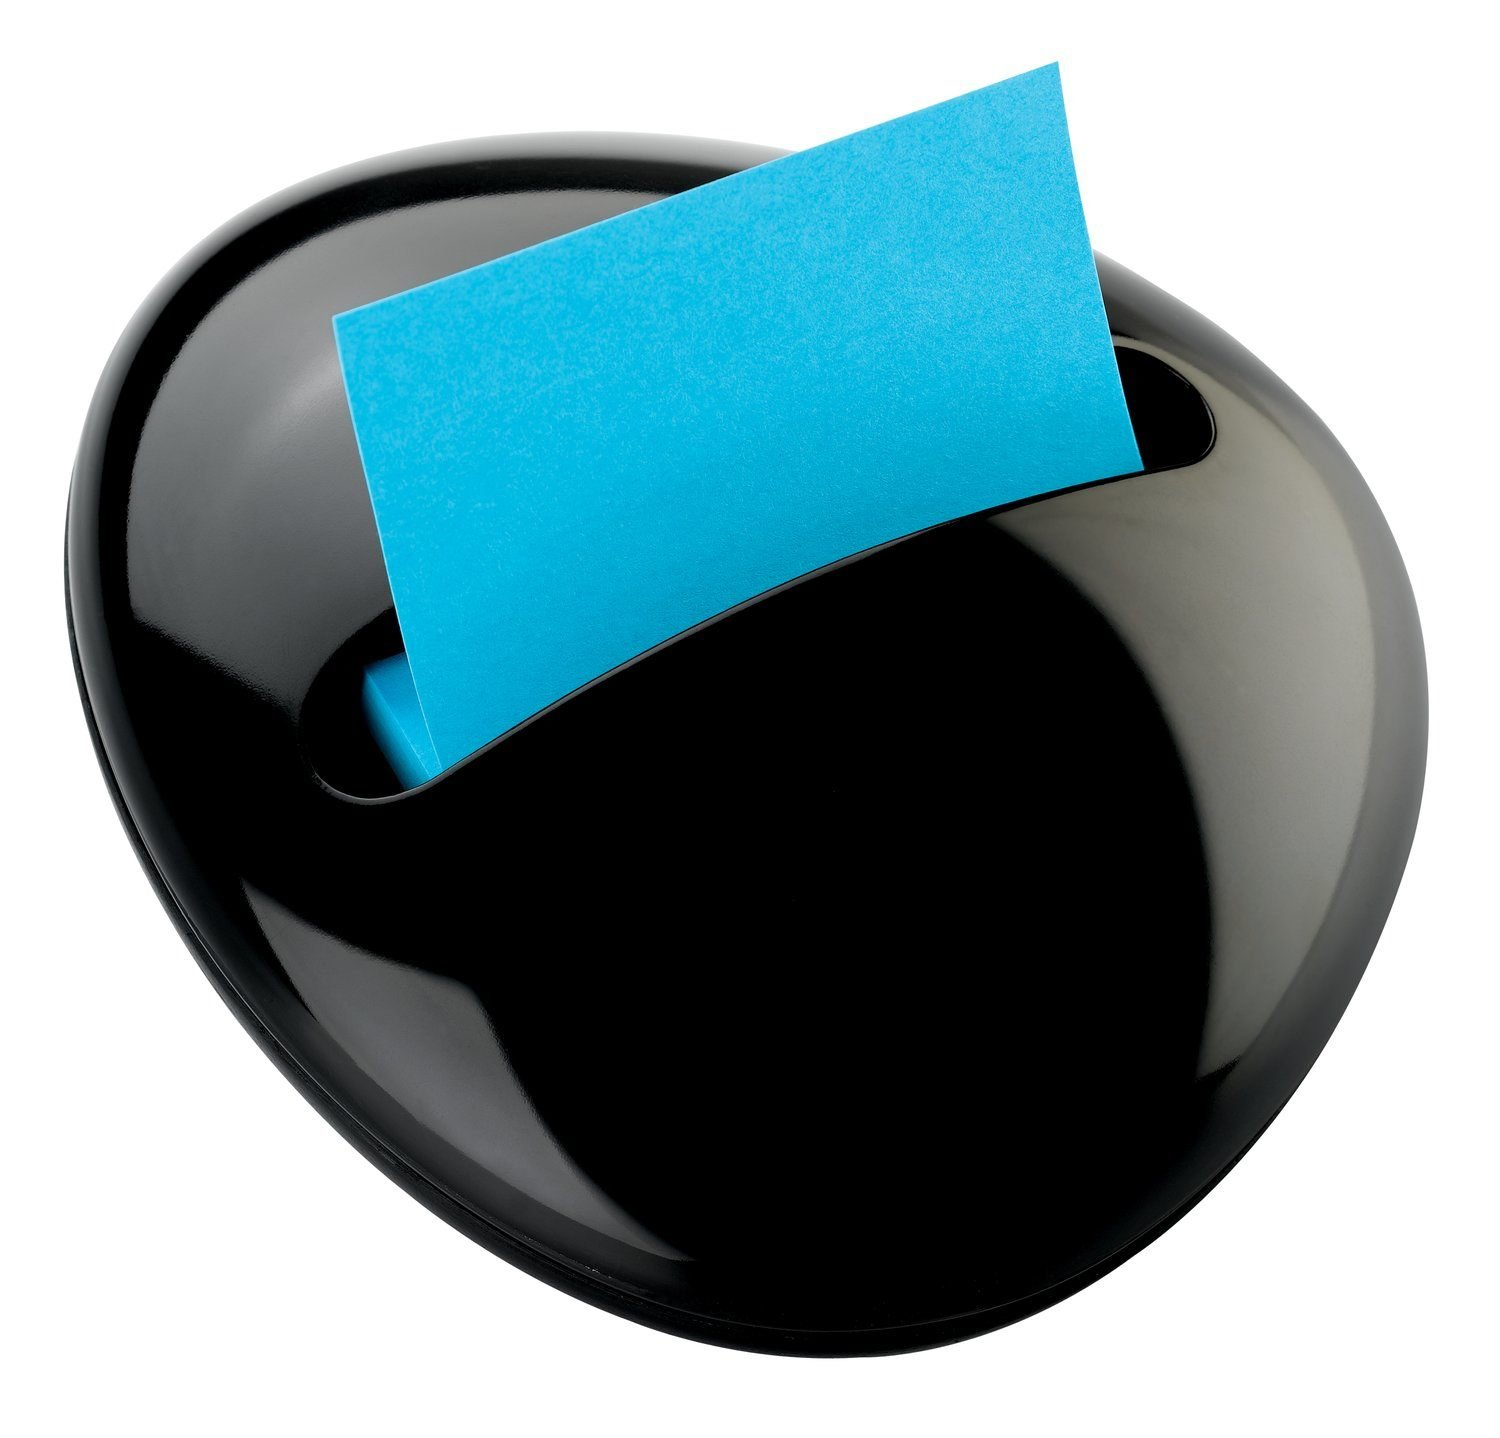 Post-it PBL-330-BK Pop-up Notes Dispenser for 3 x 3-Inch Notes, Black, Pebble Collection by Karim